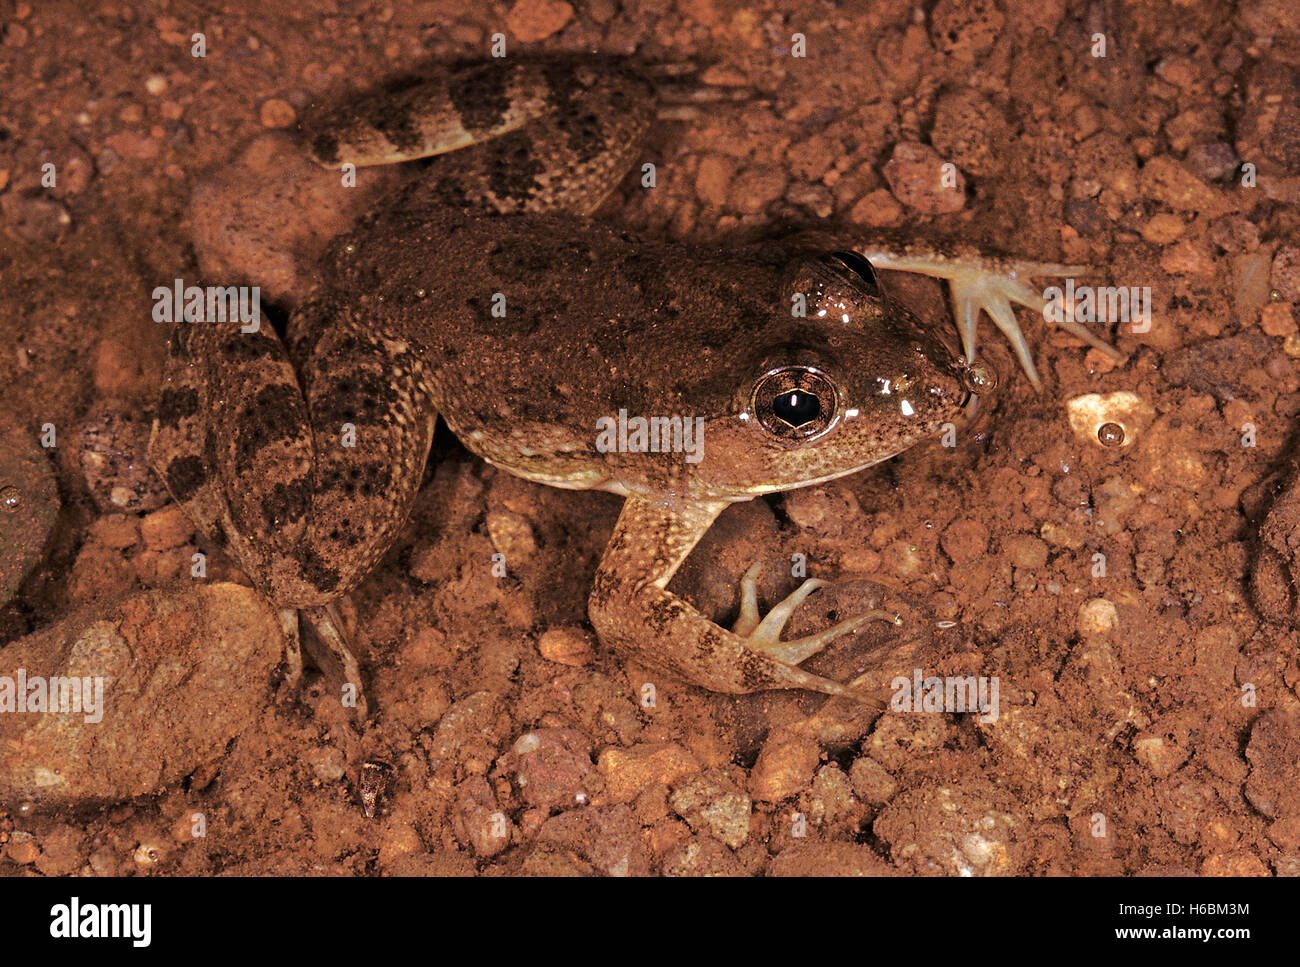 Occidozyga Cyanophlyctis. Indian skipping frog. A medium sized frog usually found in or immediately adjacent to - Stock Image